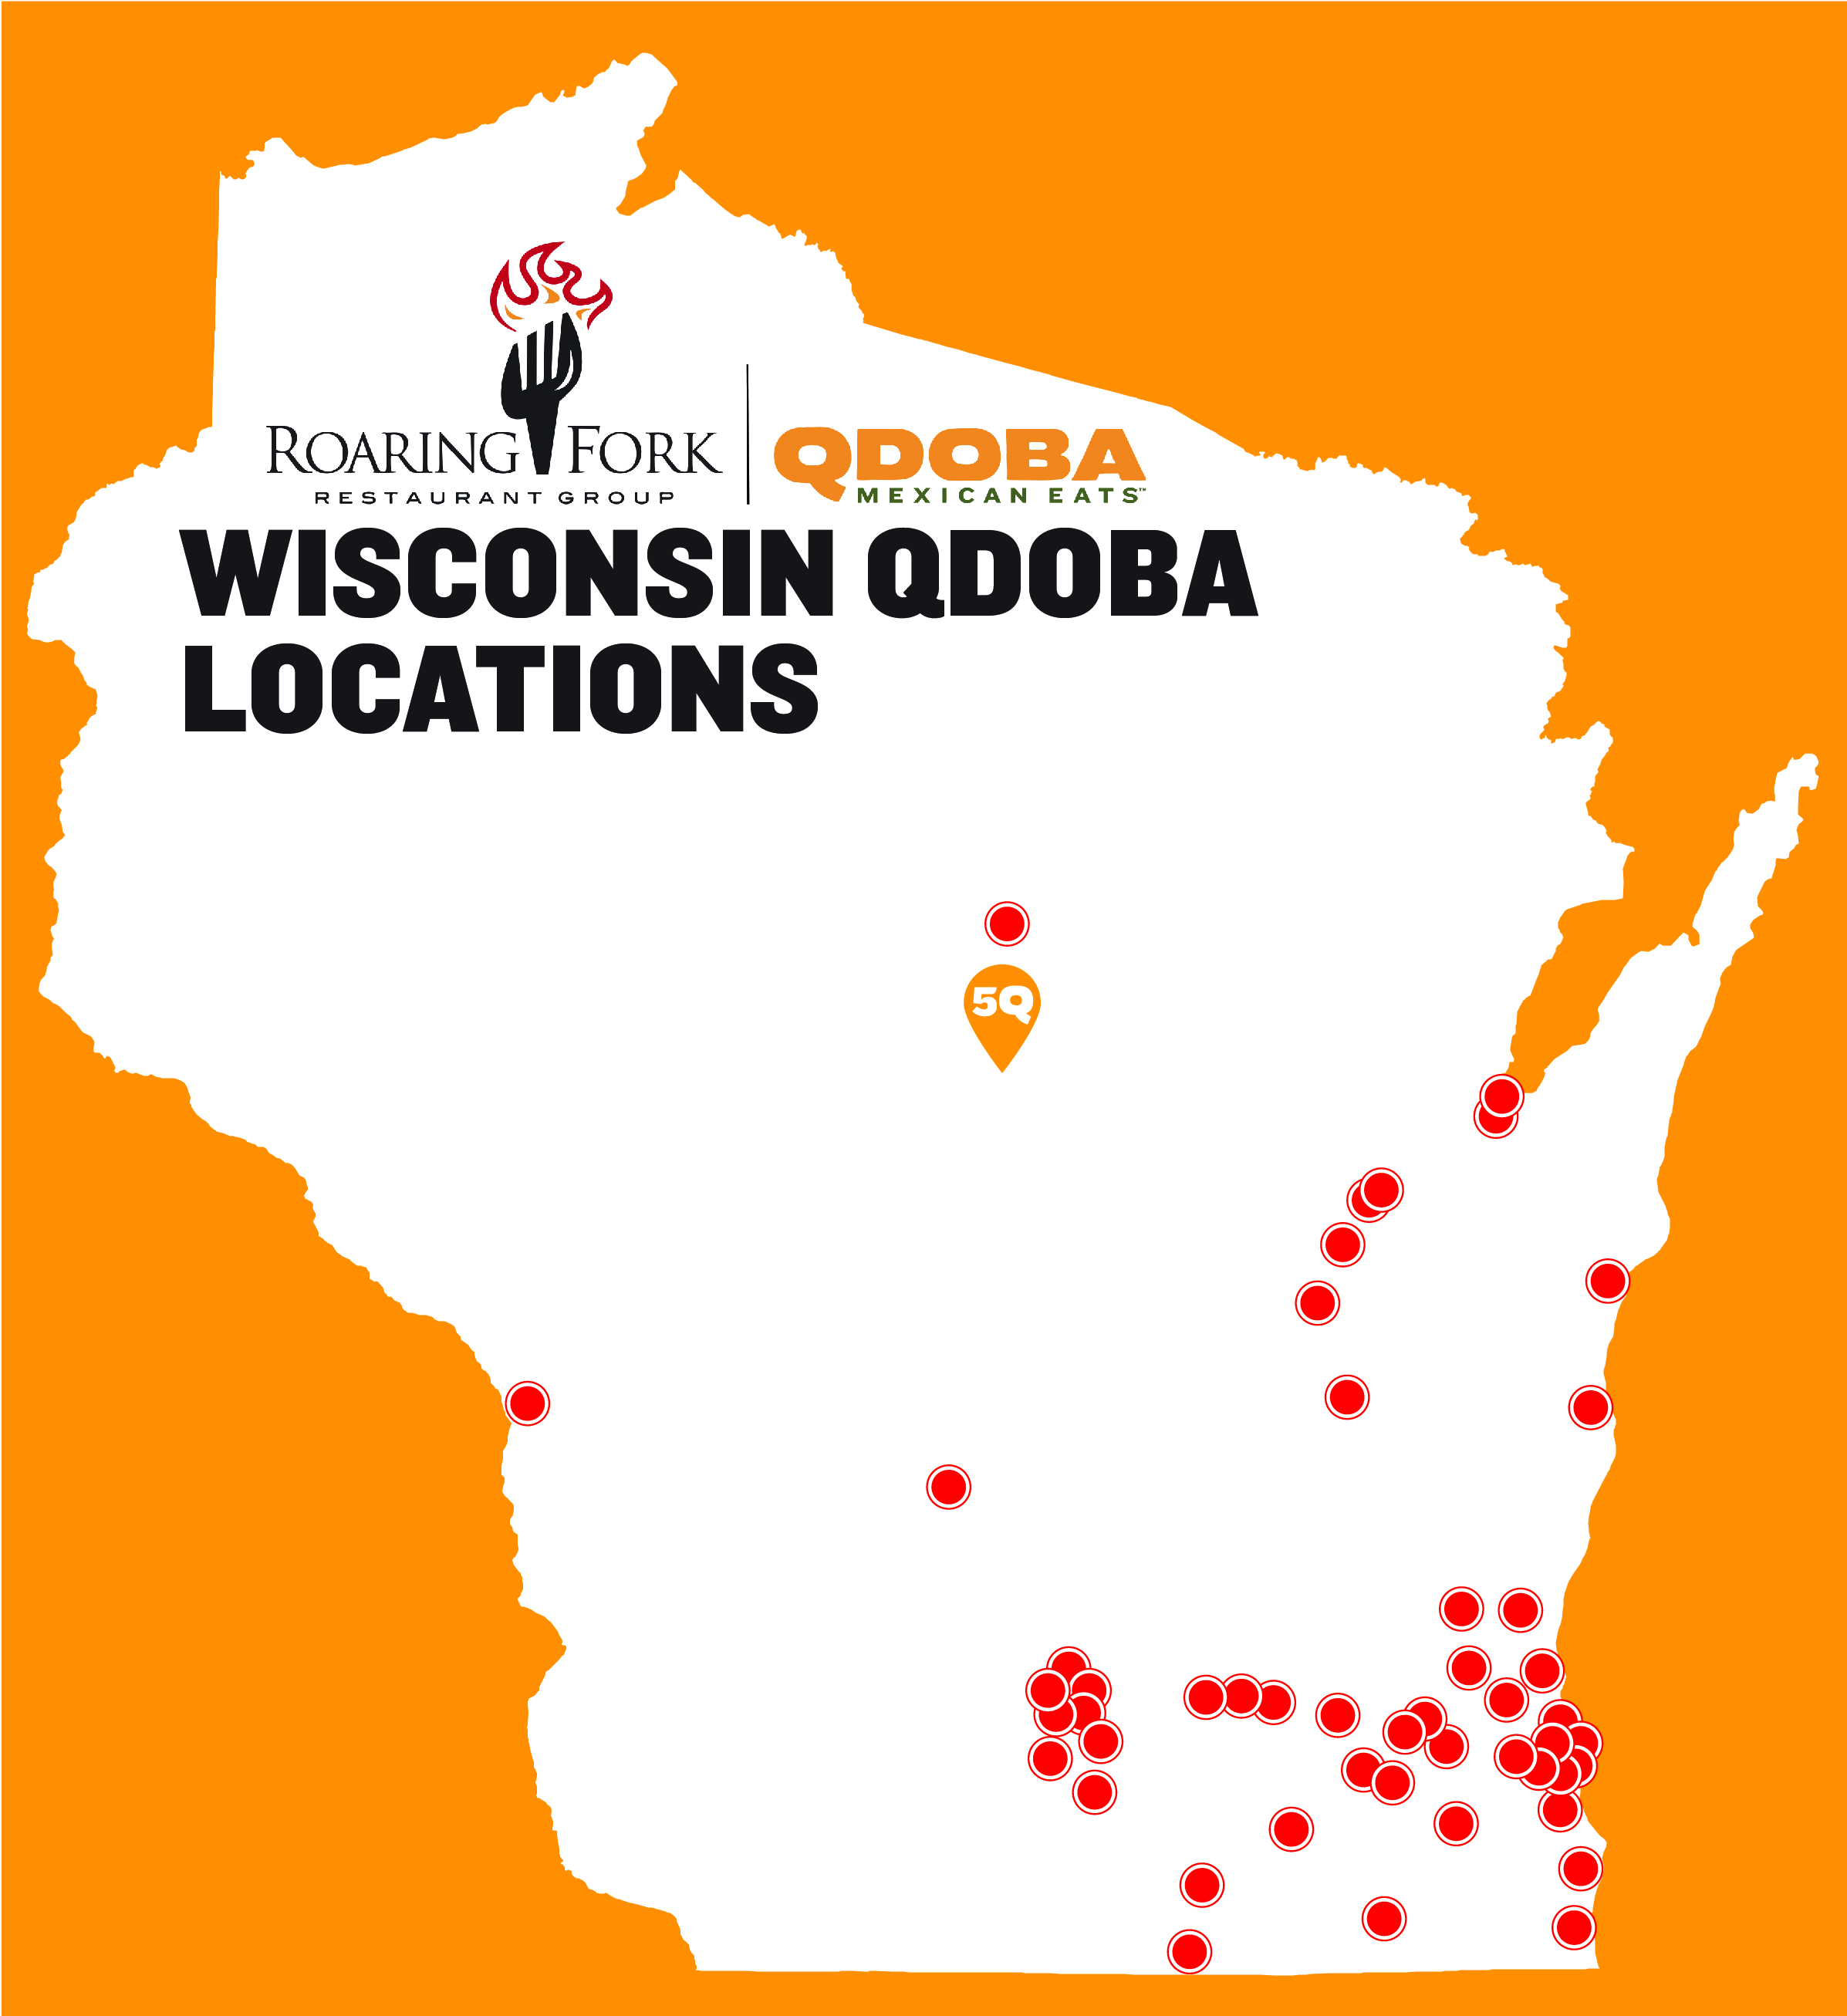 Qdoba Mexican Eats Wisconsin Locations Map